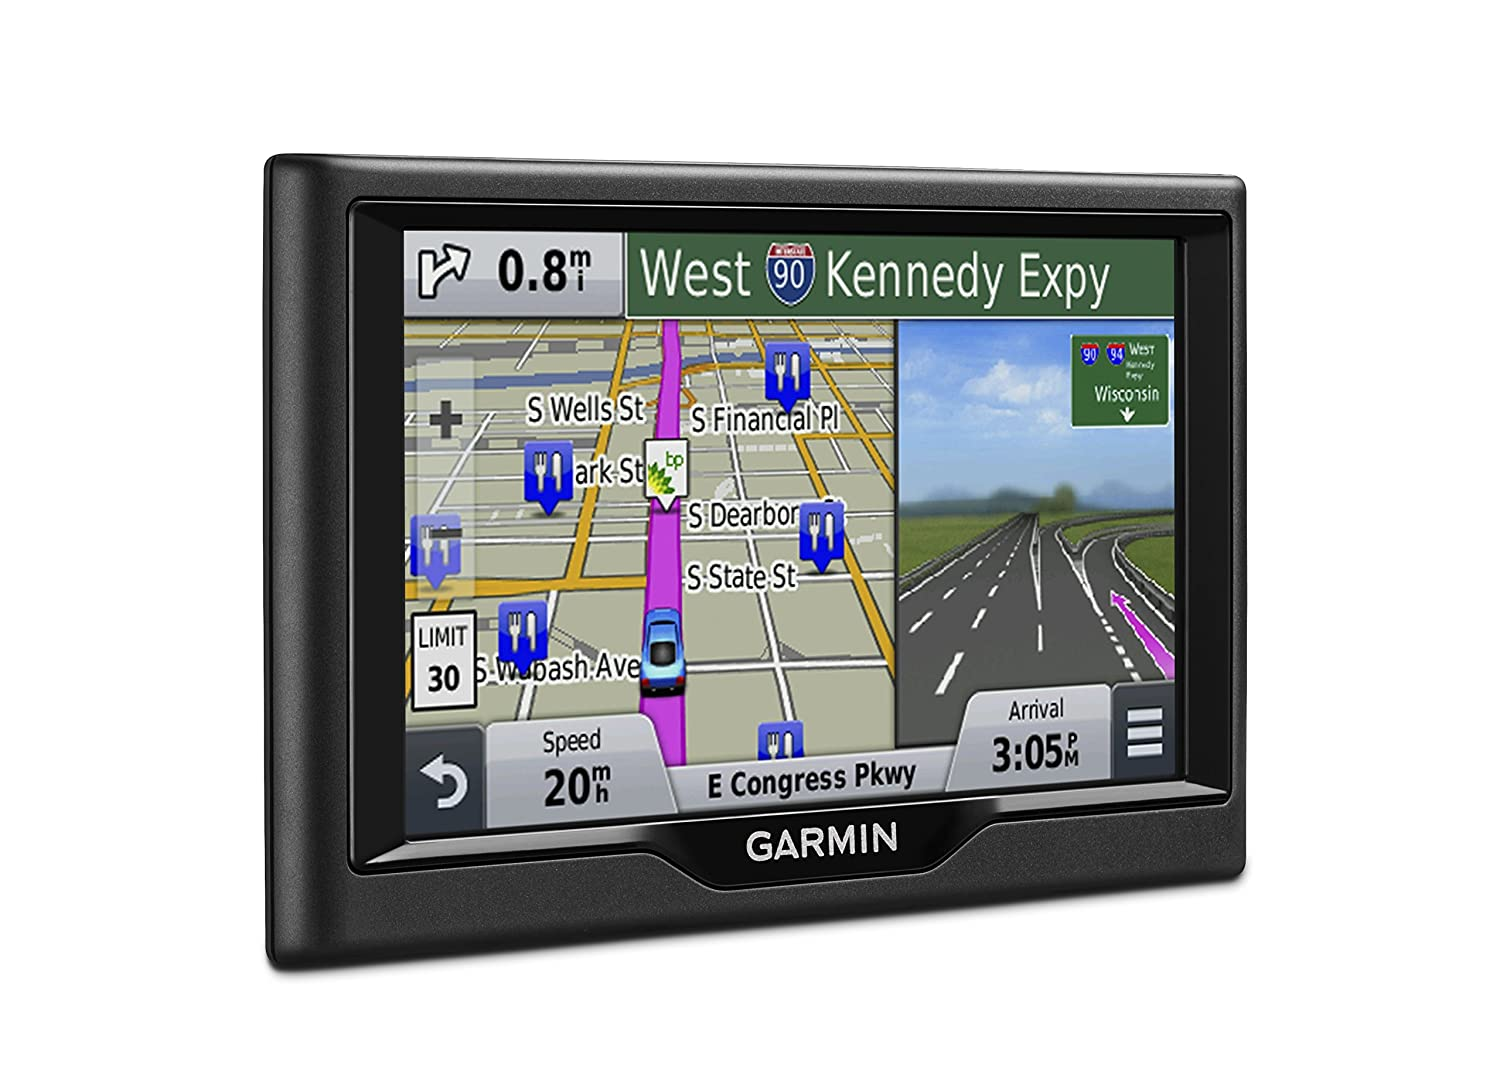 Garmin Gps Update >> Garmin Nuvi 57lm Gps Navigator System With Spoken Turn By Turn Directions 5 Inch Display Lifetime Map Updates Direct Access And Speed Limit